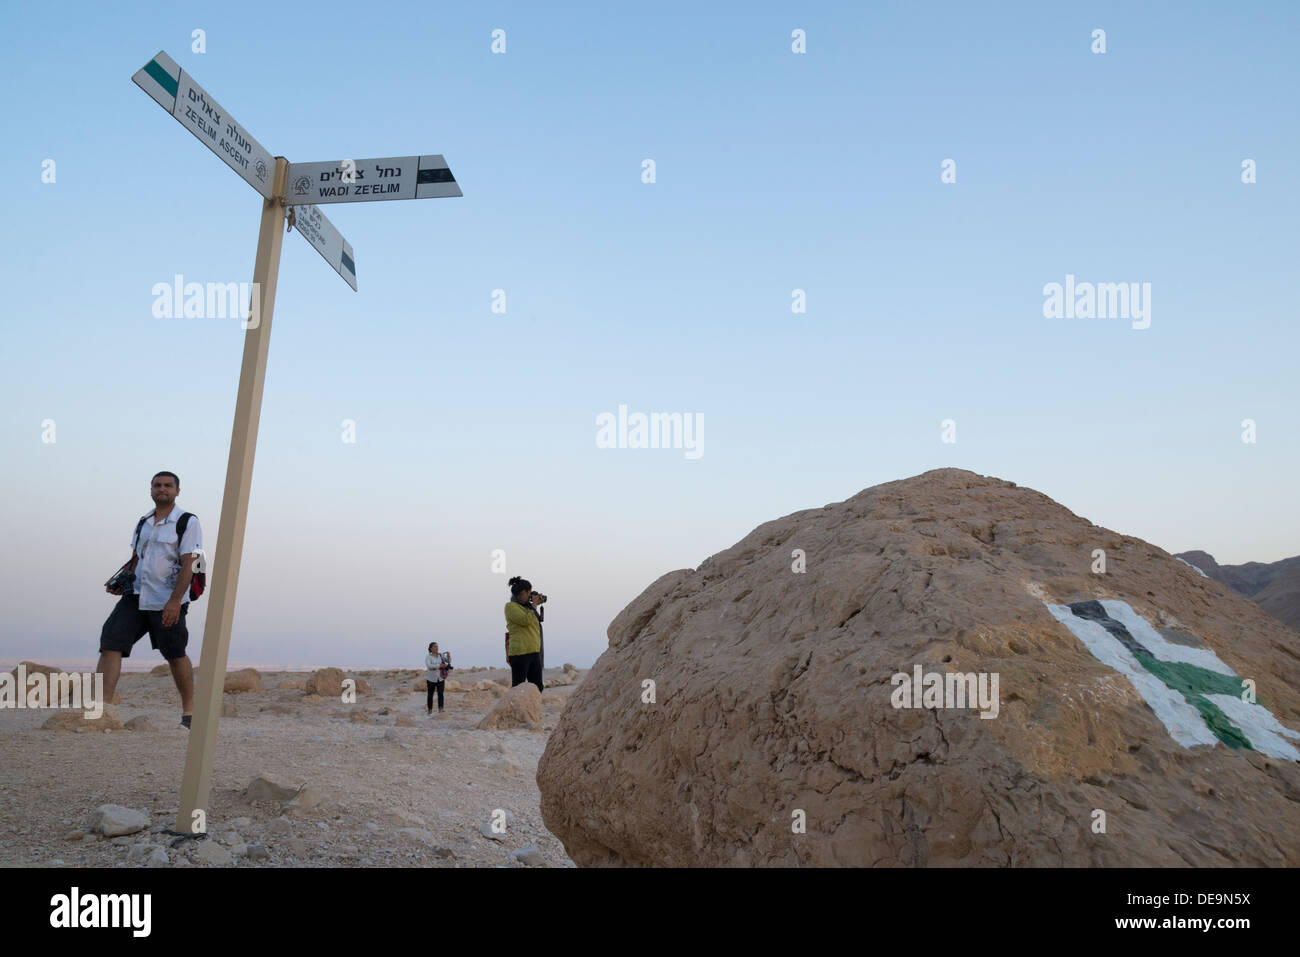 Trek in Wadi Zeelim. Desert of judea. israel. - Stock Image